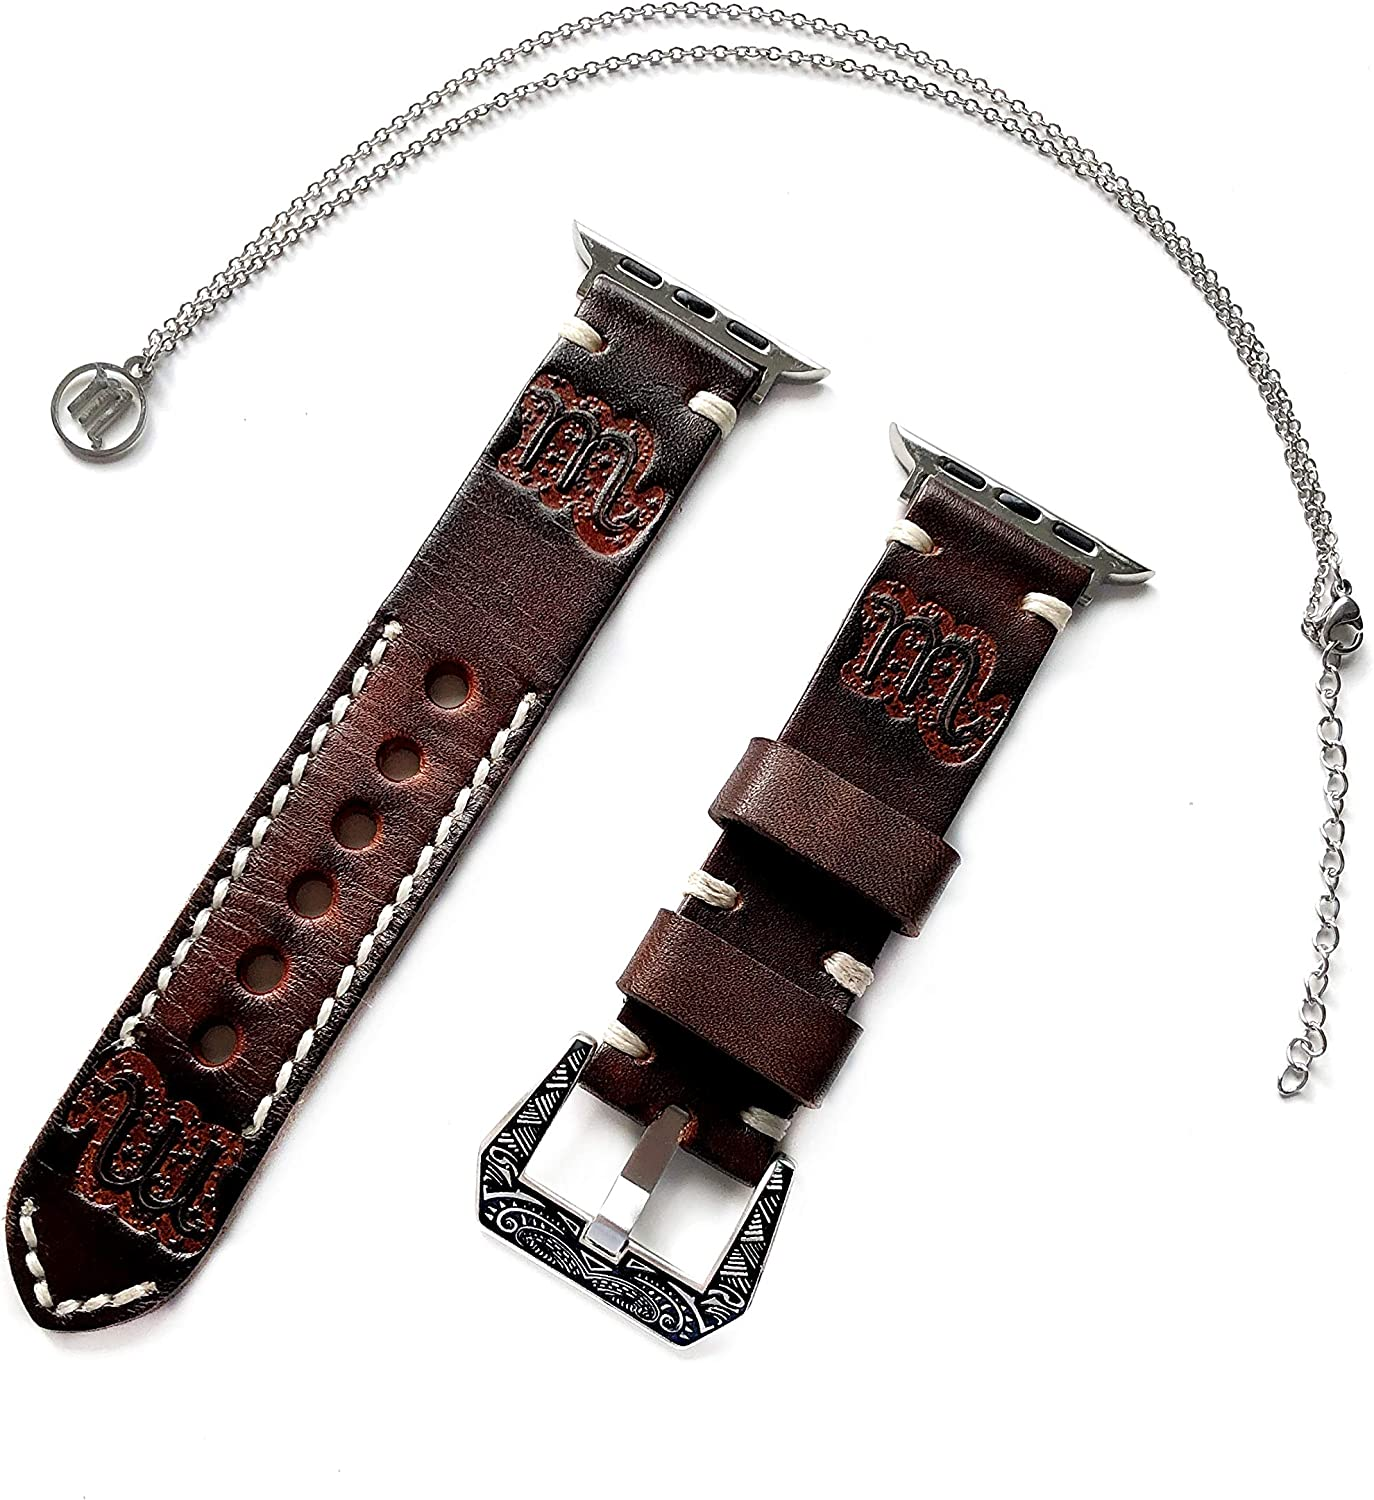 Scorpio Zodiac Band Set Compatible with Apple Watch 38mm 40mm 42mm 44mm iWatch SE 6 5 4 3 2 1 All Series Brown Leather Embossed Strap and 25